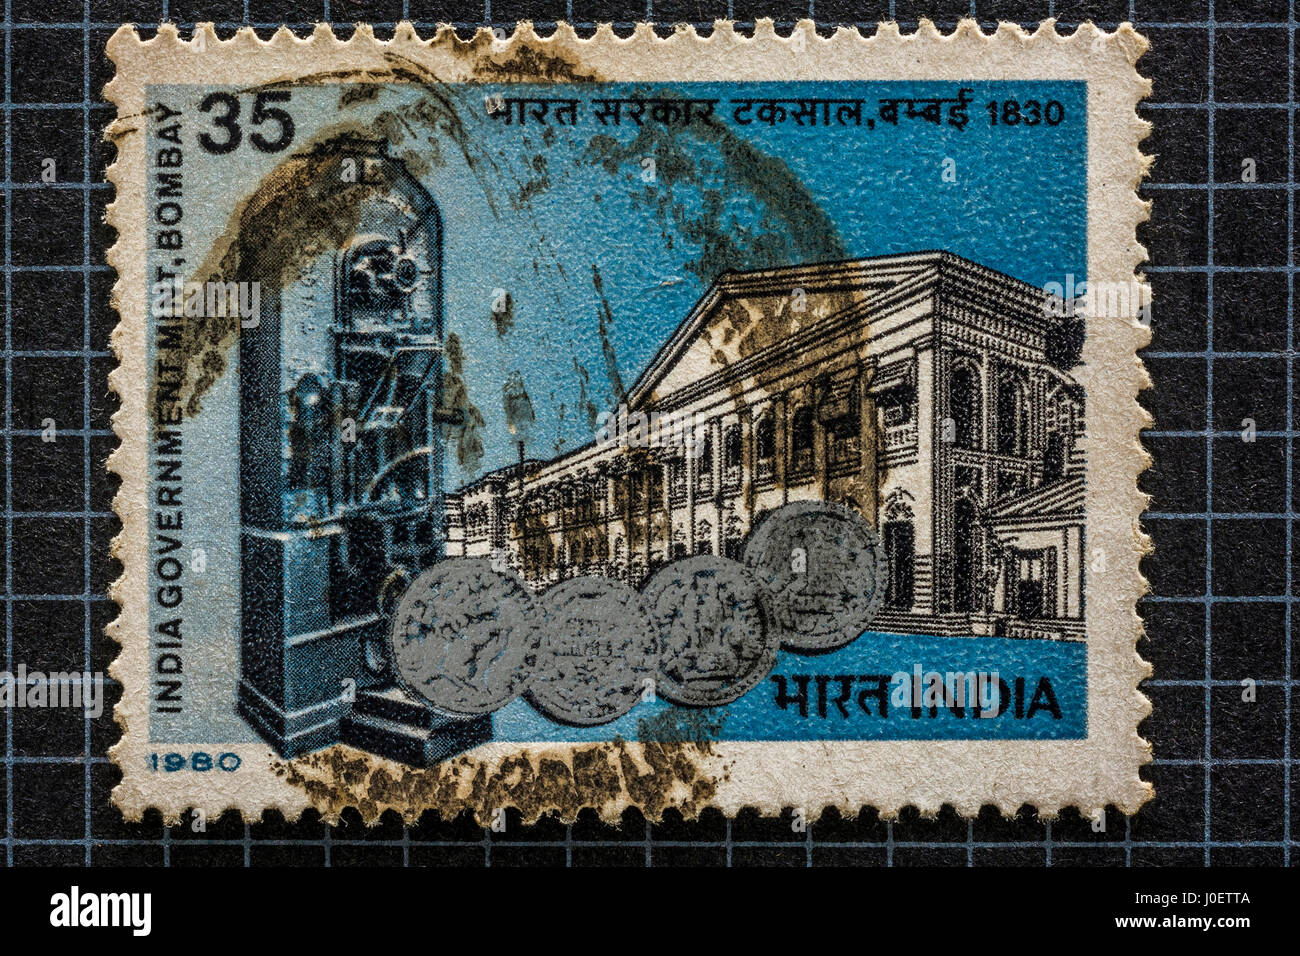 Government mint, postage stamps, india, asia - Stock Image